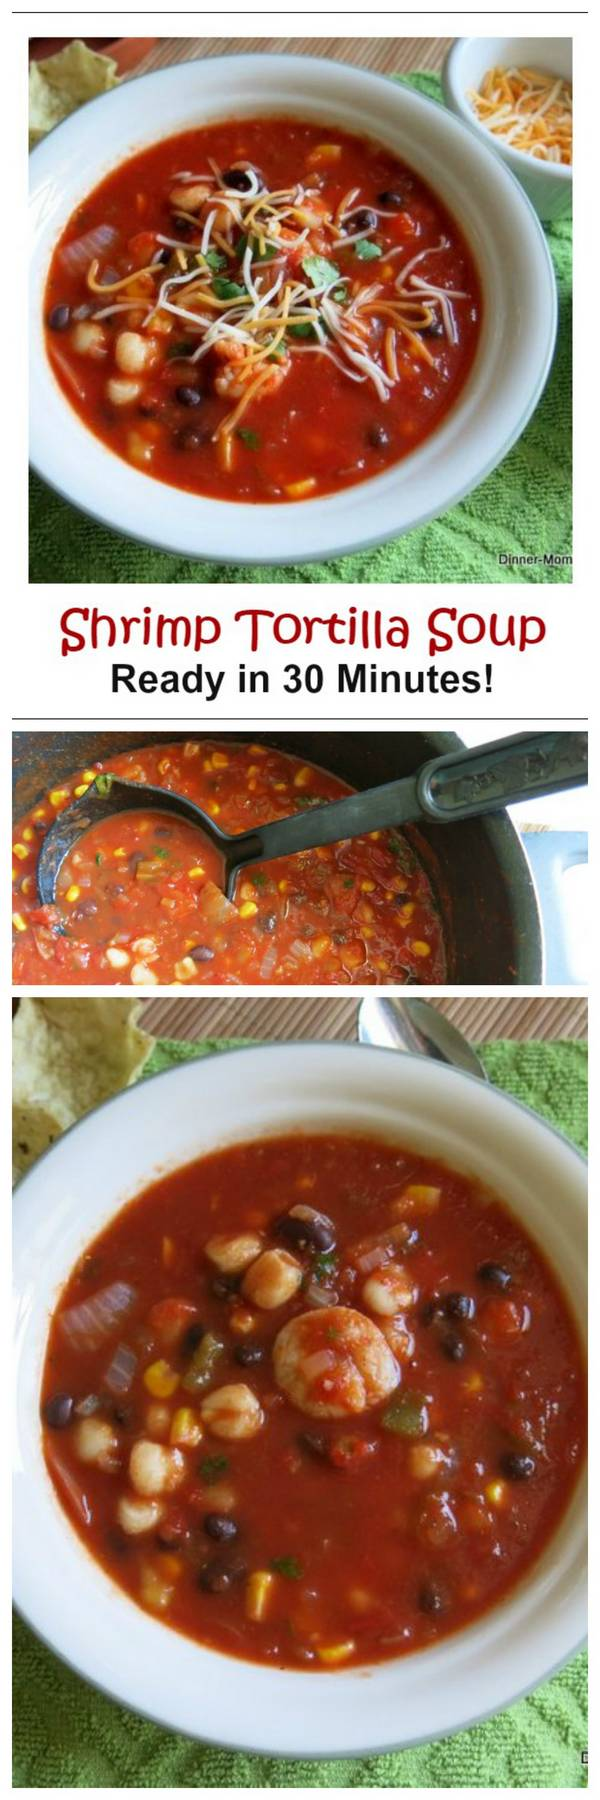 Shrimp Tortilla Soup is full of healthy ingredients and comes together in less than 30 minutes! No need for takeout with this easy recipe.